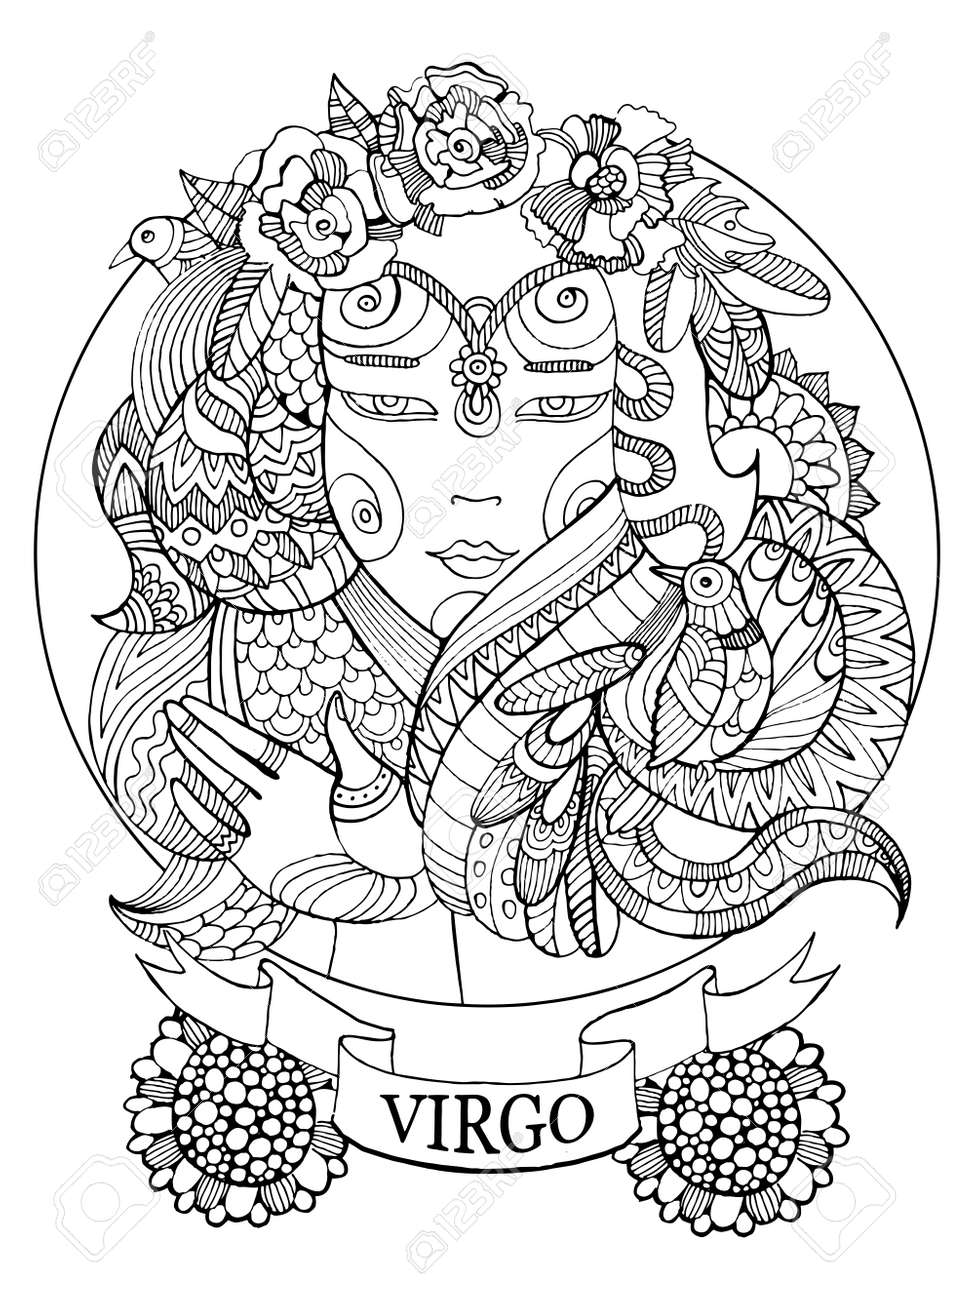 Virgo zodiac sign coloring book for adults vector illustration virgo zodiac sign coloring book for adults vector illustration anti stress coloring for adult buycottarizona Images